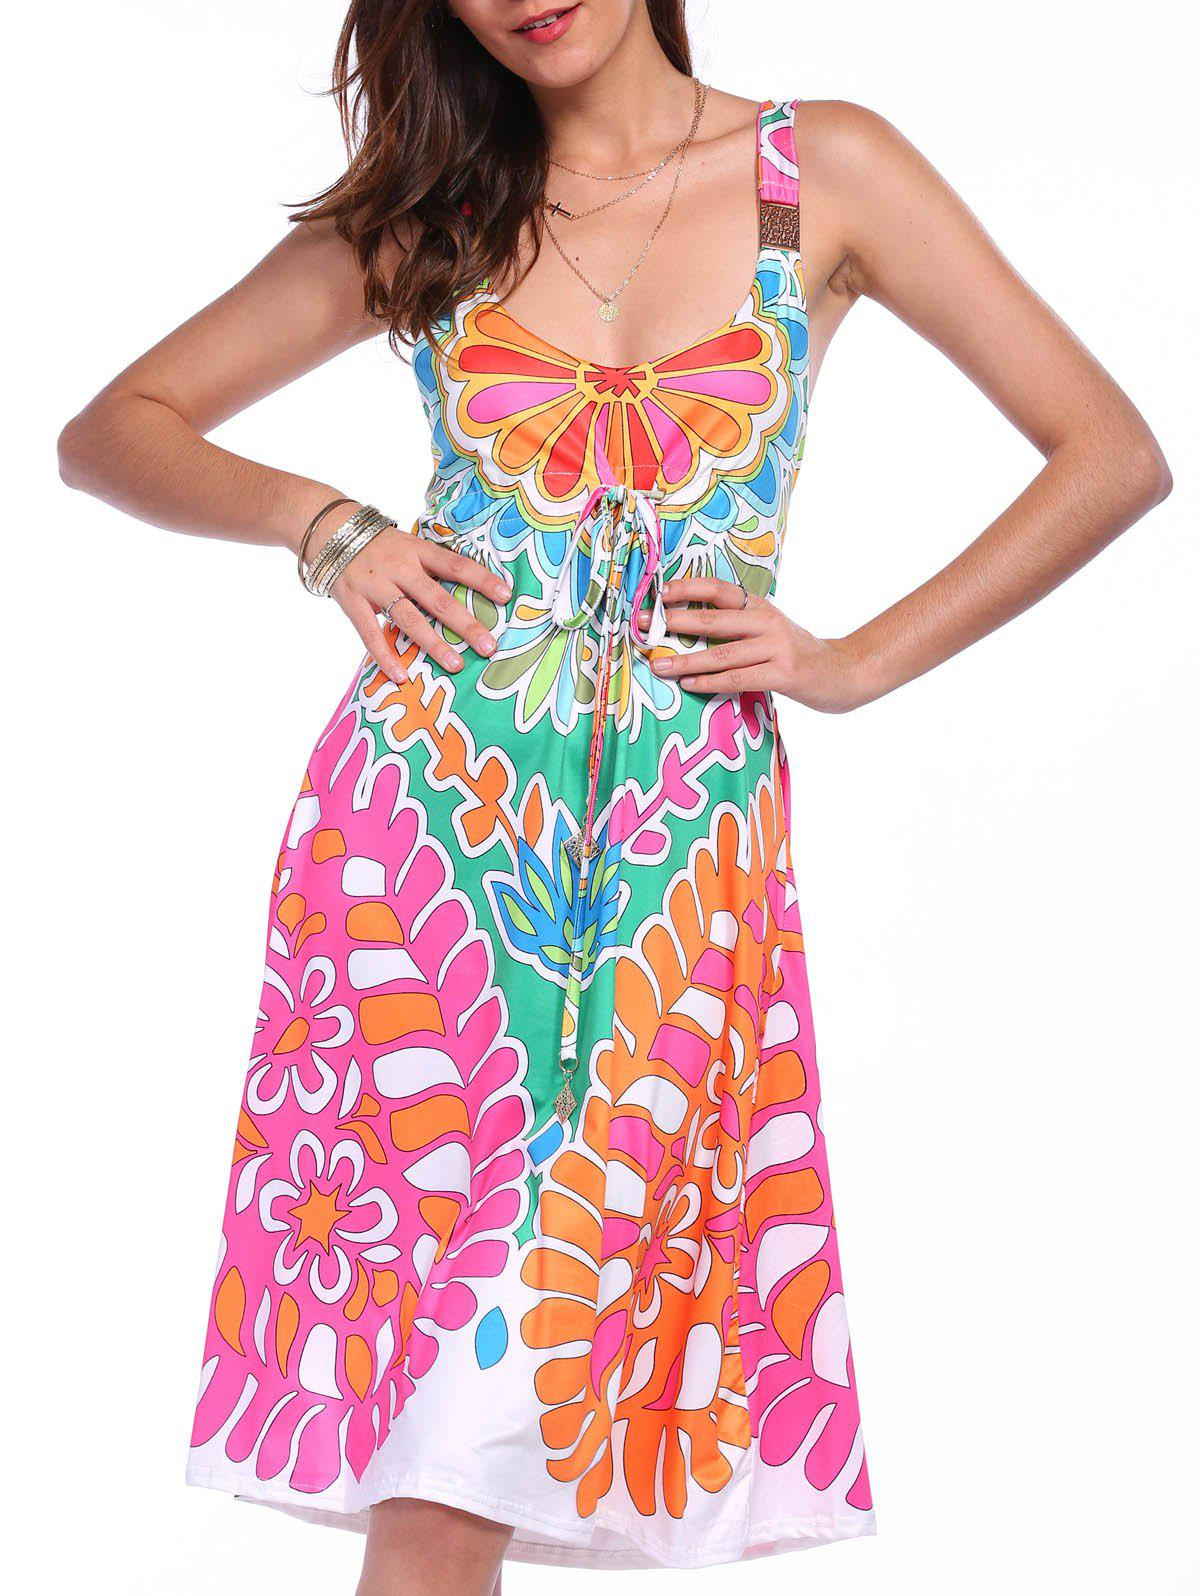 Hot Ethnic Style Plunging Neck Sleeveless Printed Colorful Dress For Women